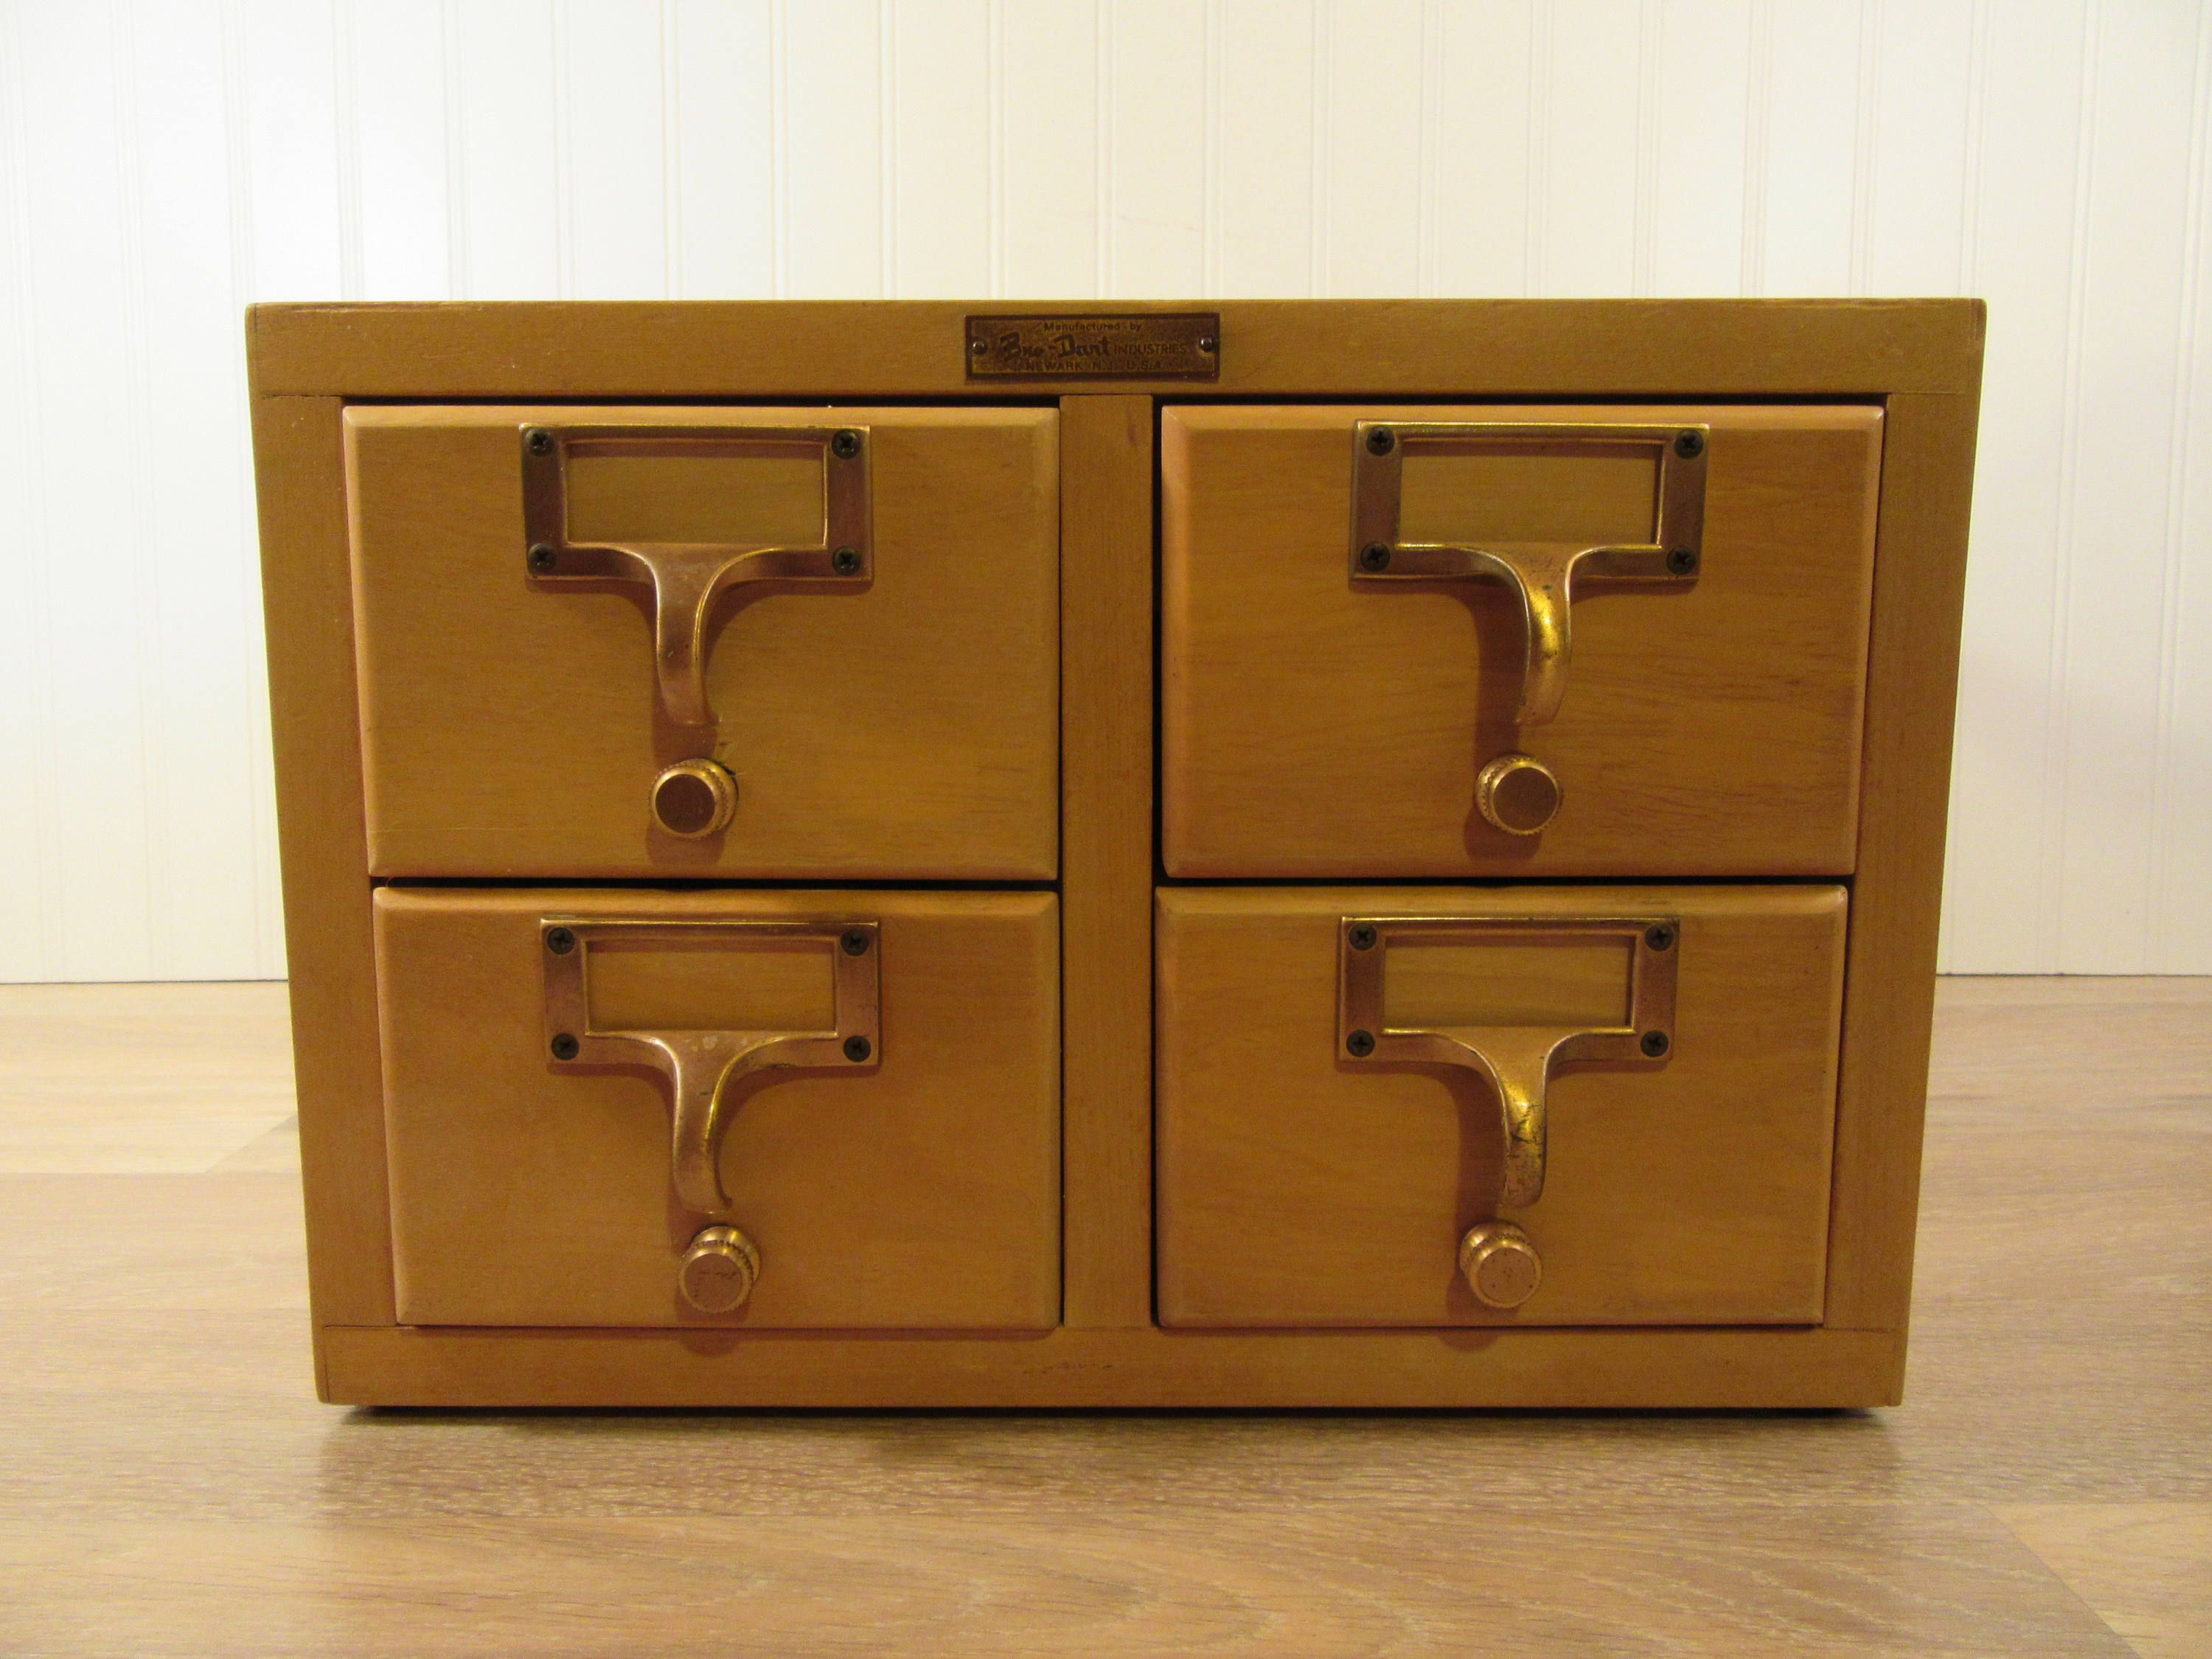 Four Drawer Wood Library Card Catalog With Pull Out Drawers